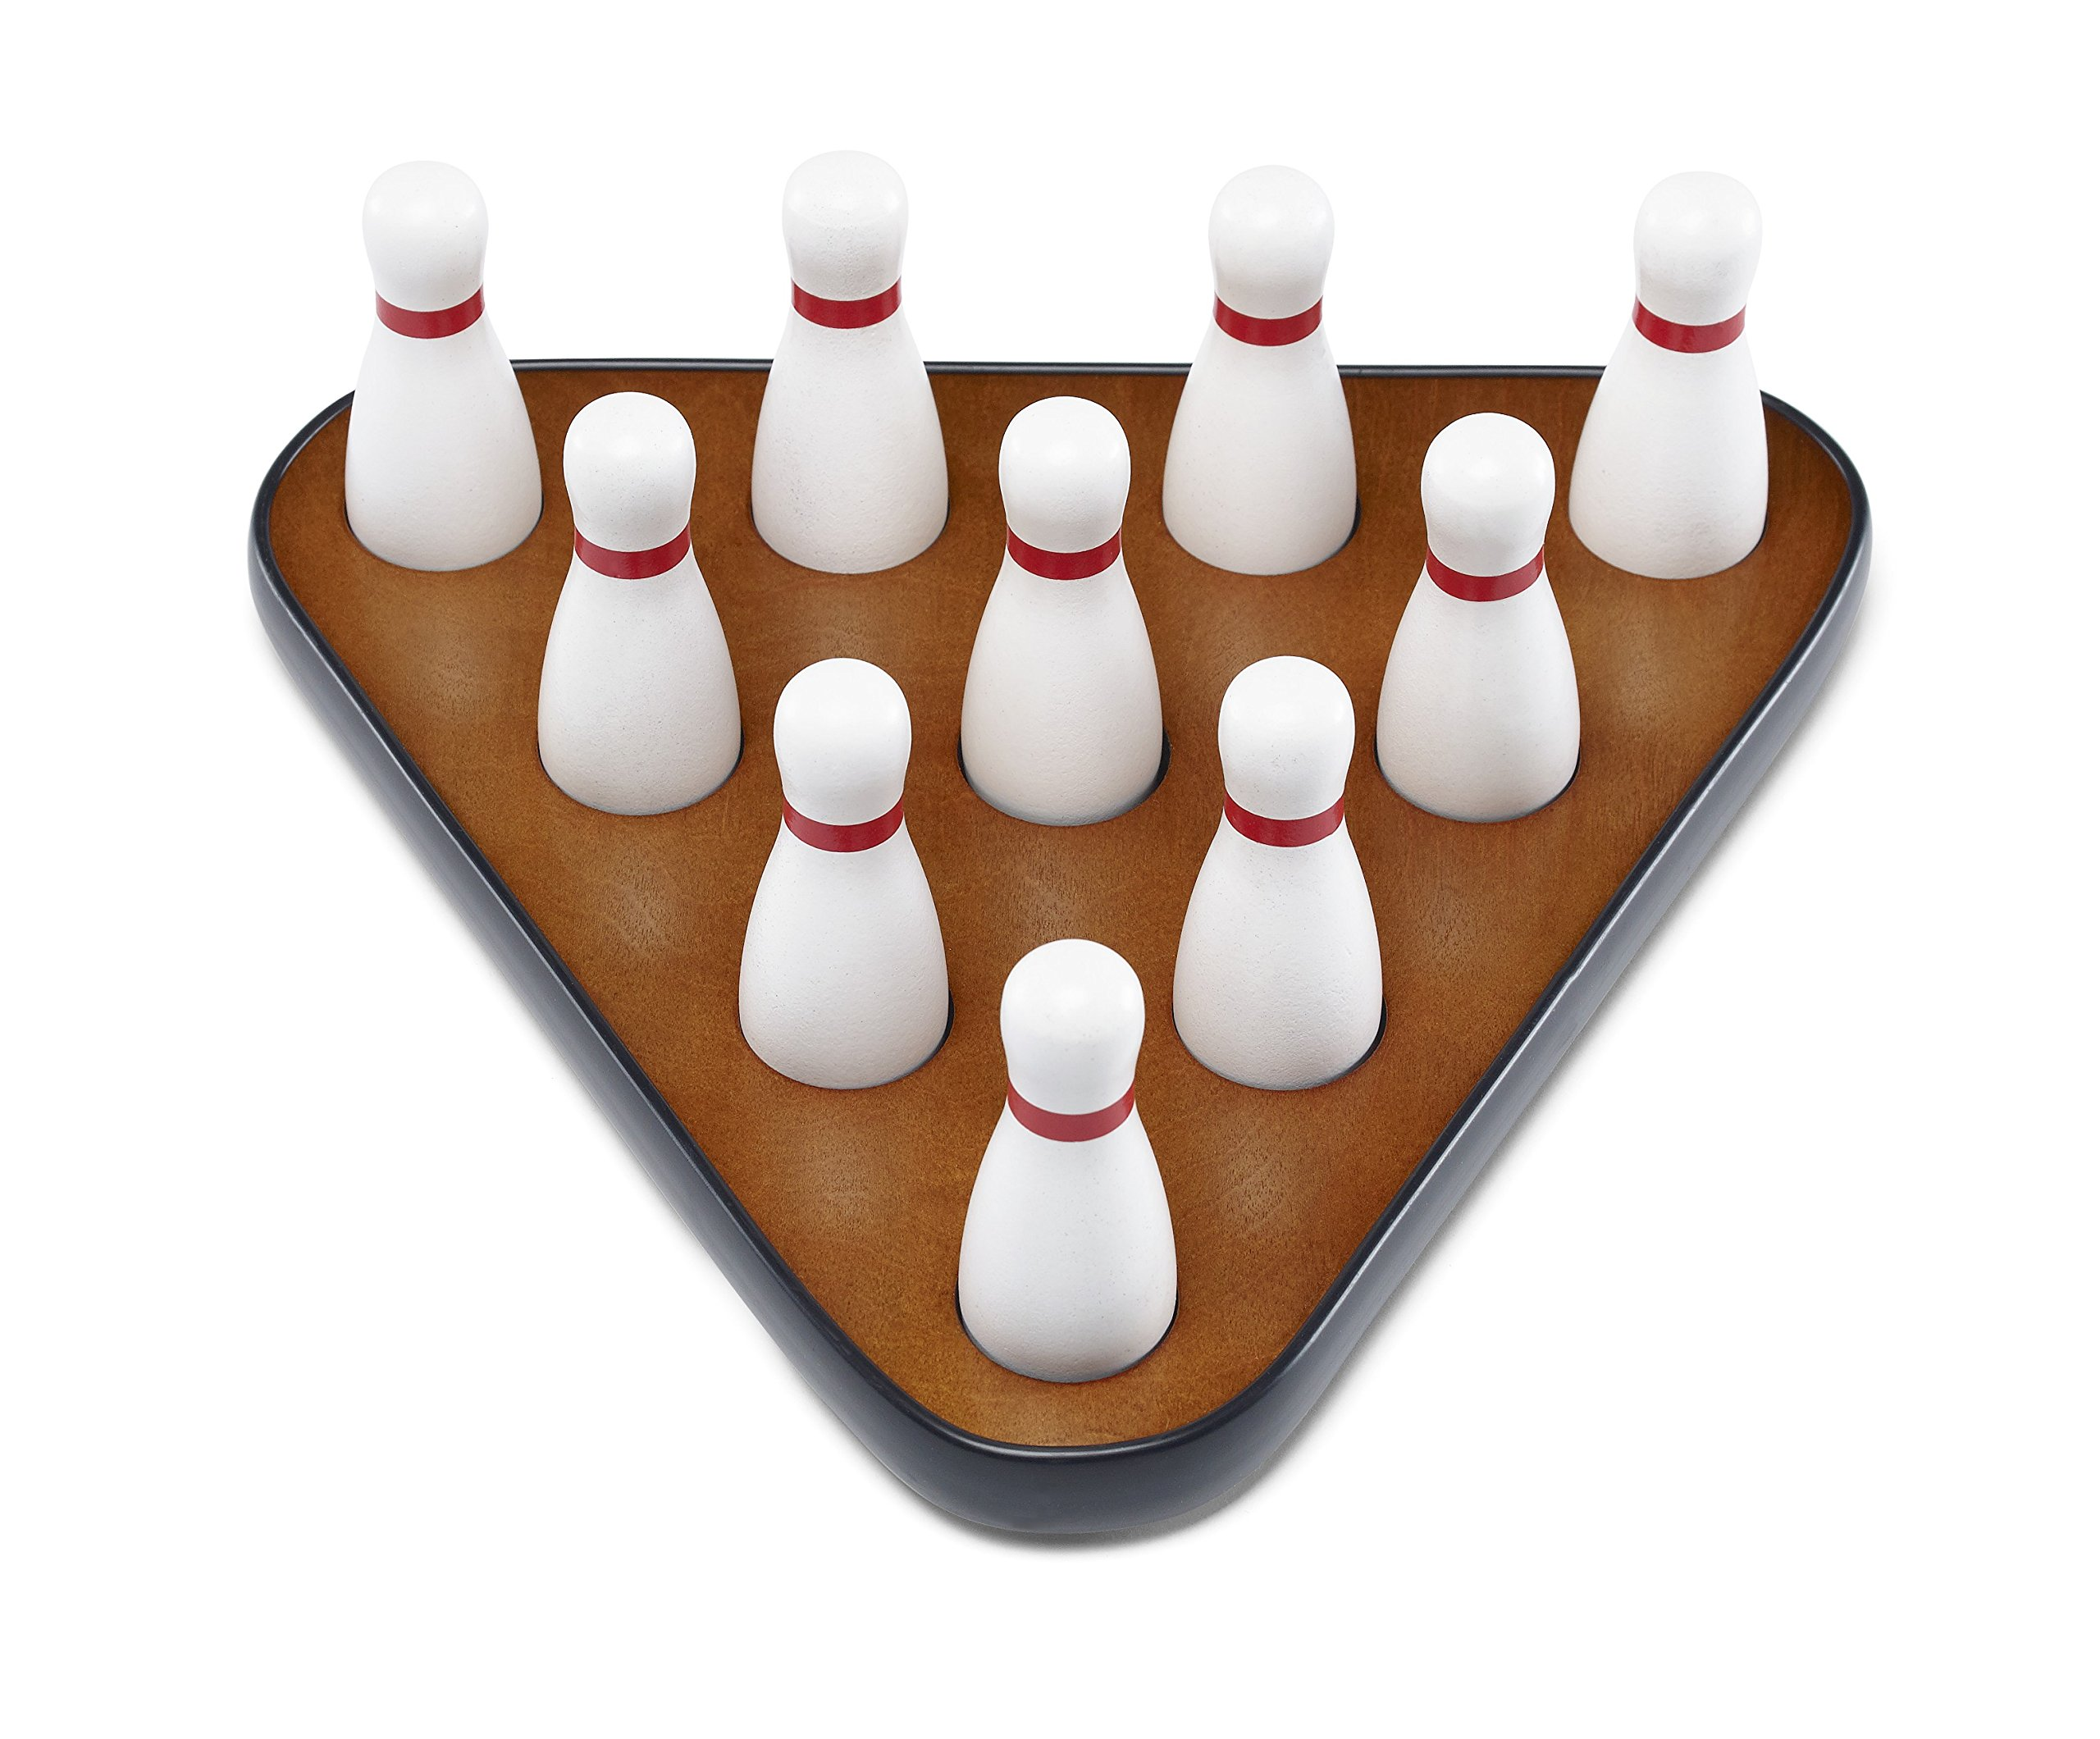 Playcraft Deluxe Pin Setter, Set of 10 Hardwood Bowling Pins and Carry Bag by Playcraft